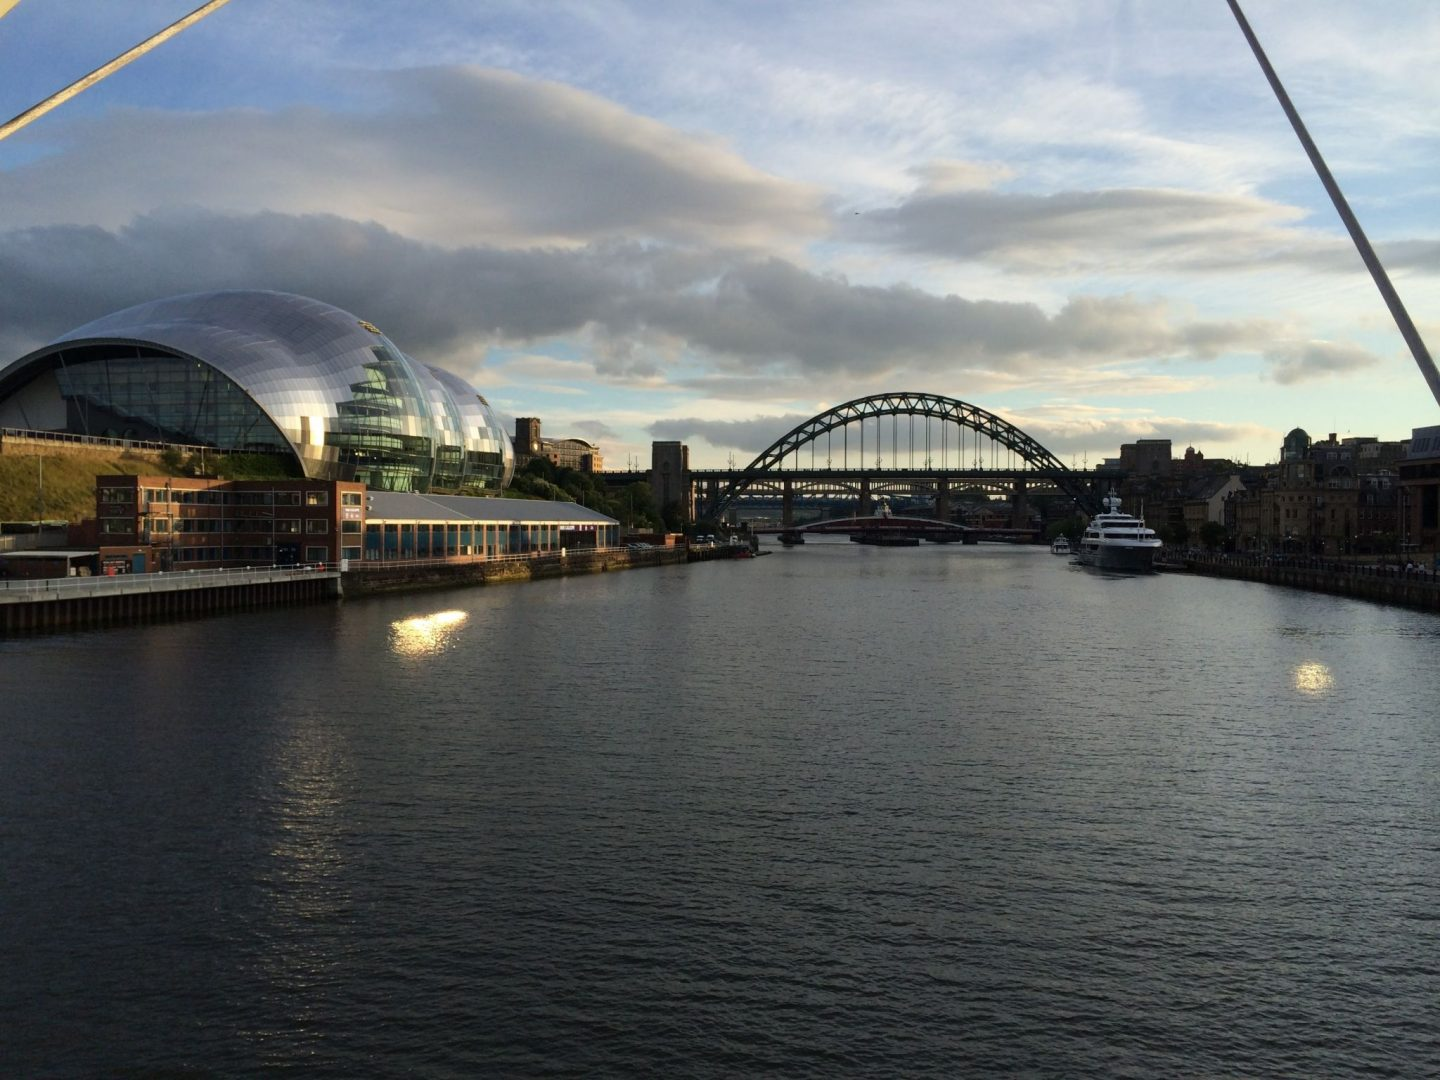 View across the Tyne in Newcastle